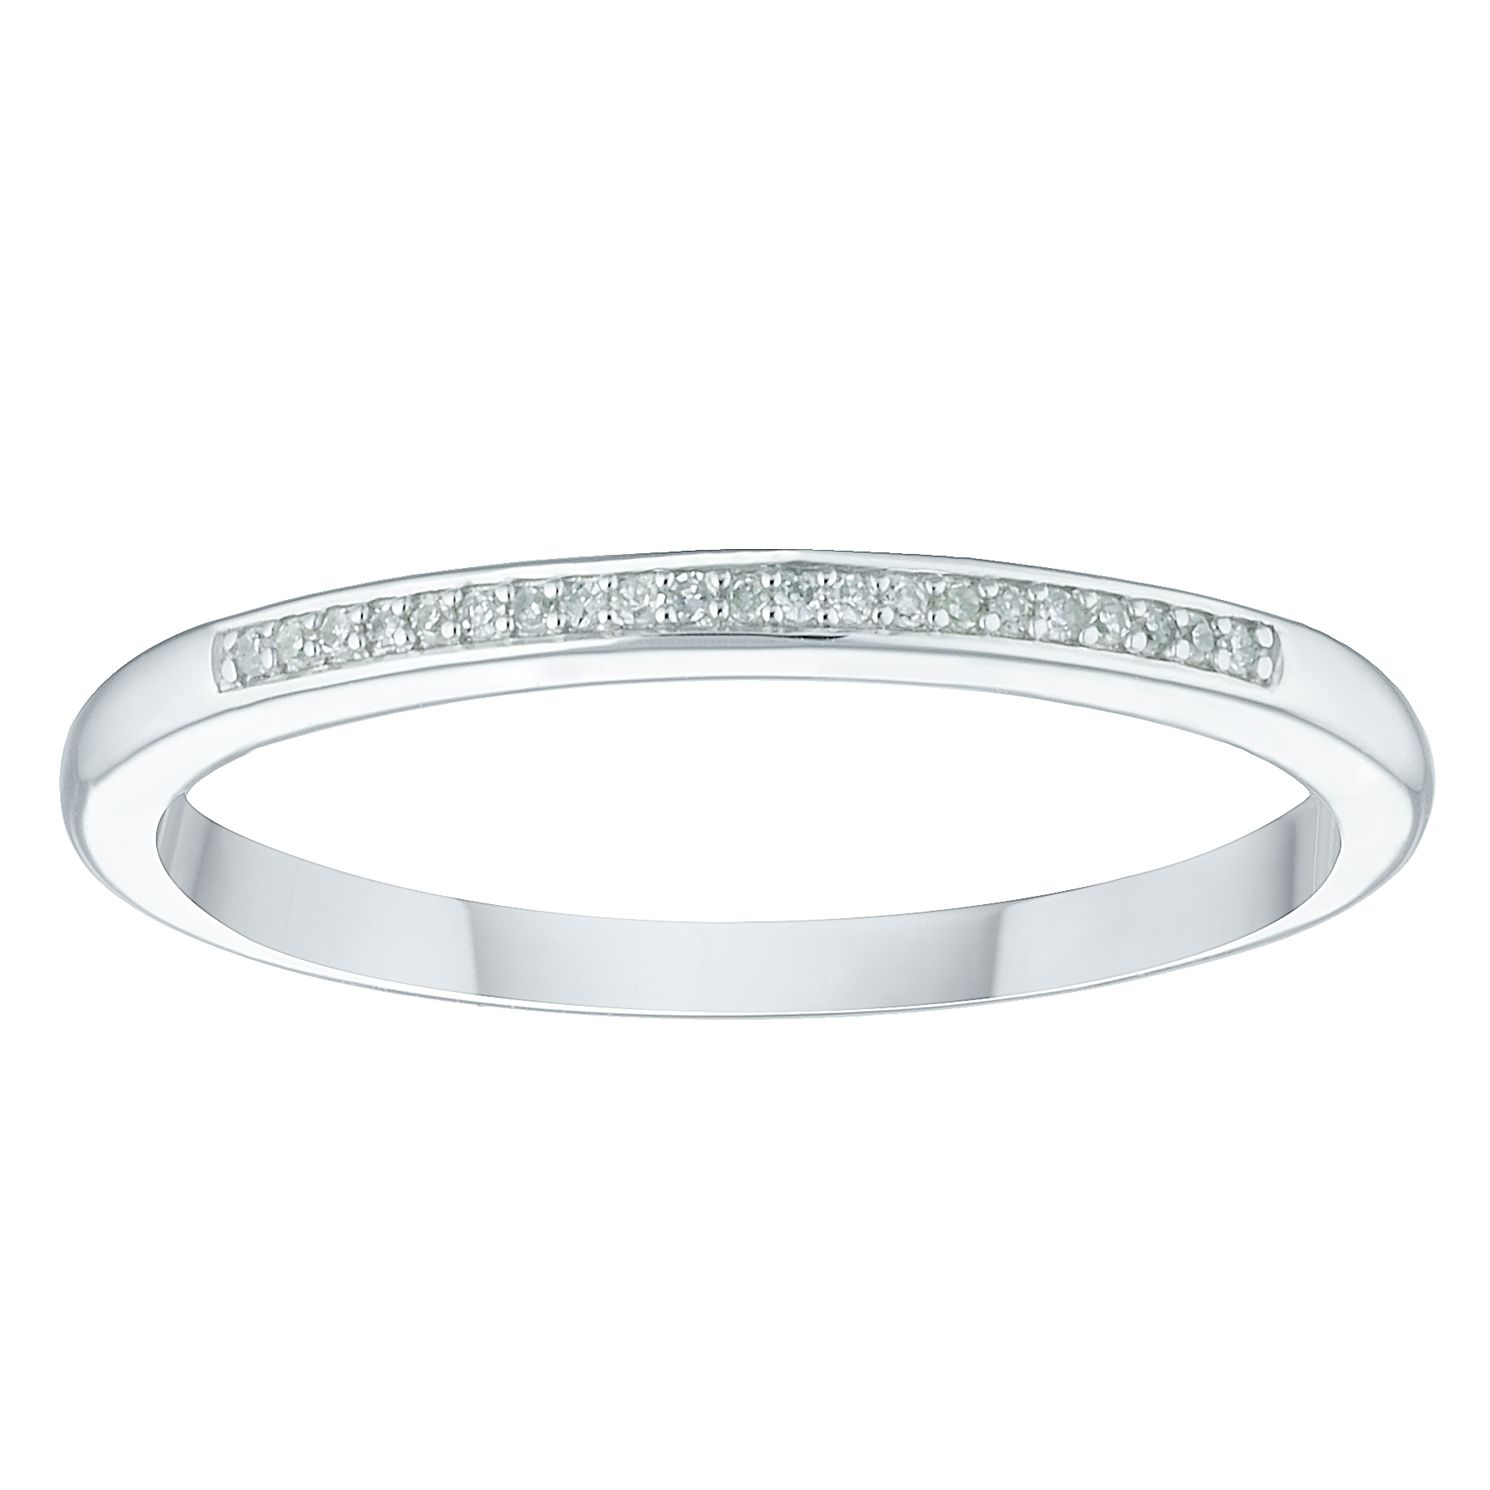 9ct White Gold Diamond Eternity Ring - Product number 4379977